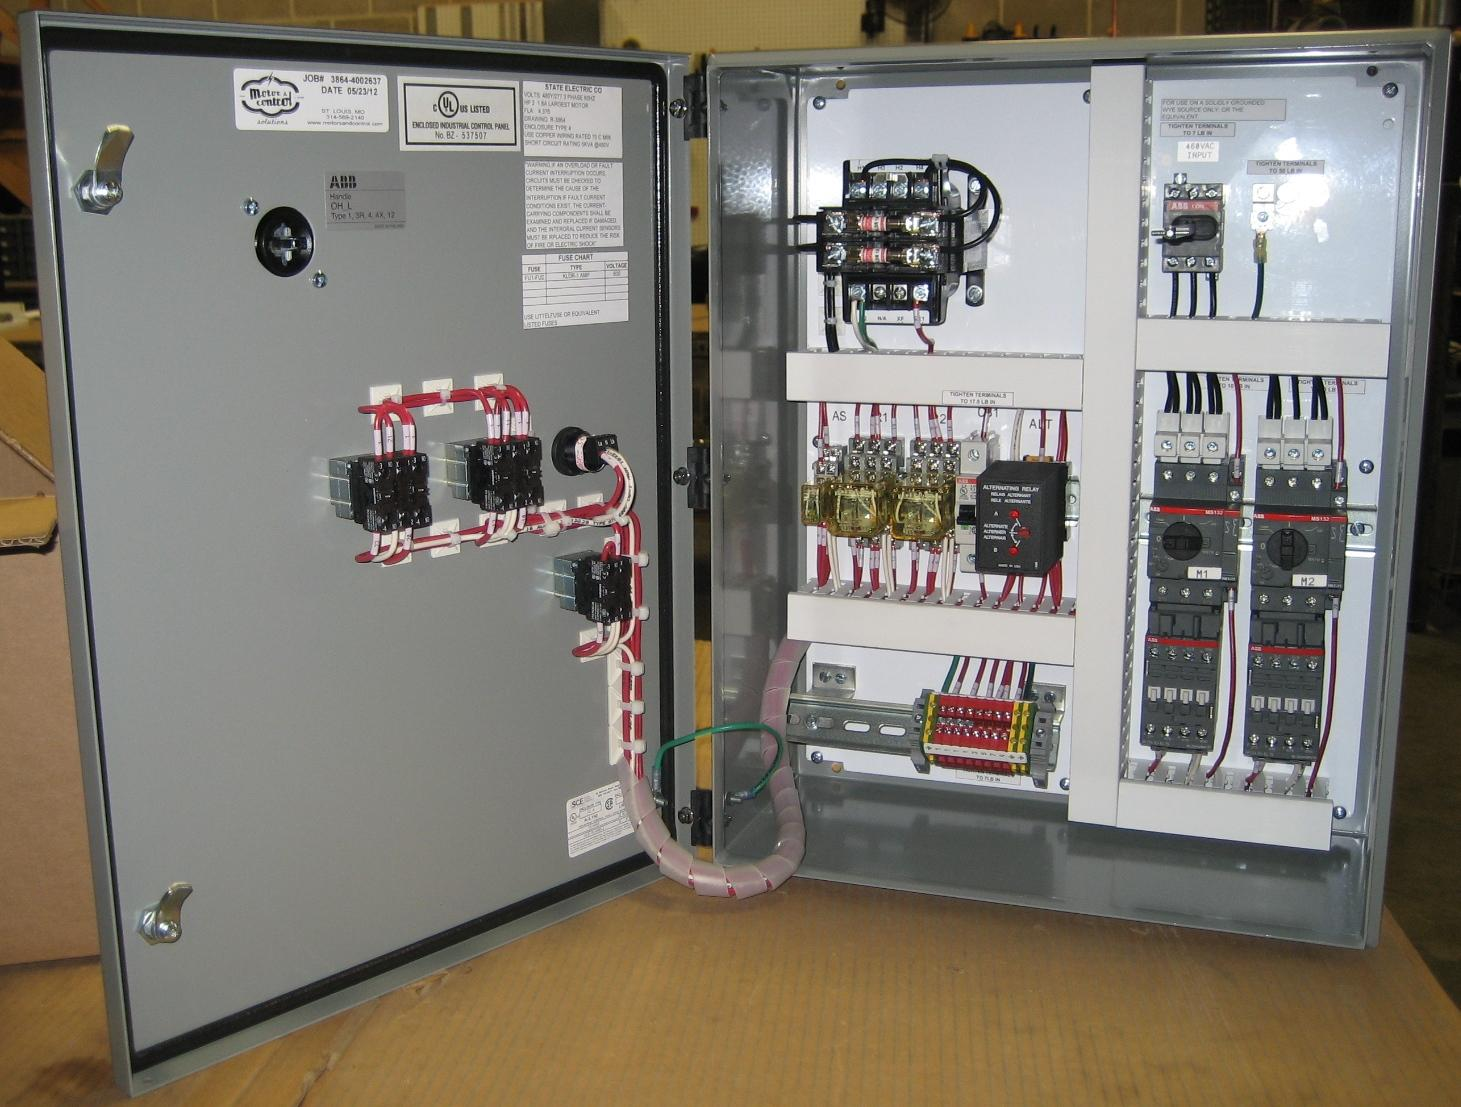 188 custom pump control panel experts fast, free quotes duplex pump control panel wiring diagram at gsmportal.co